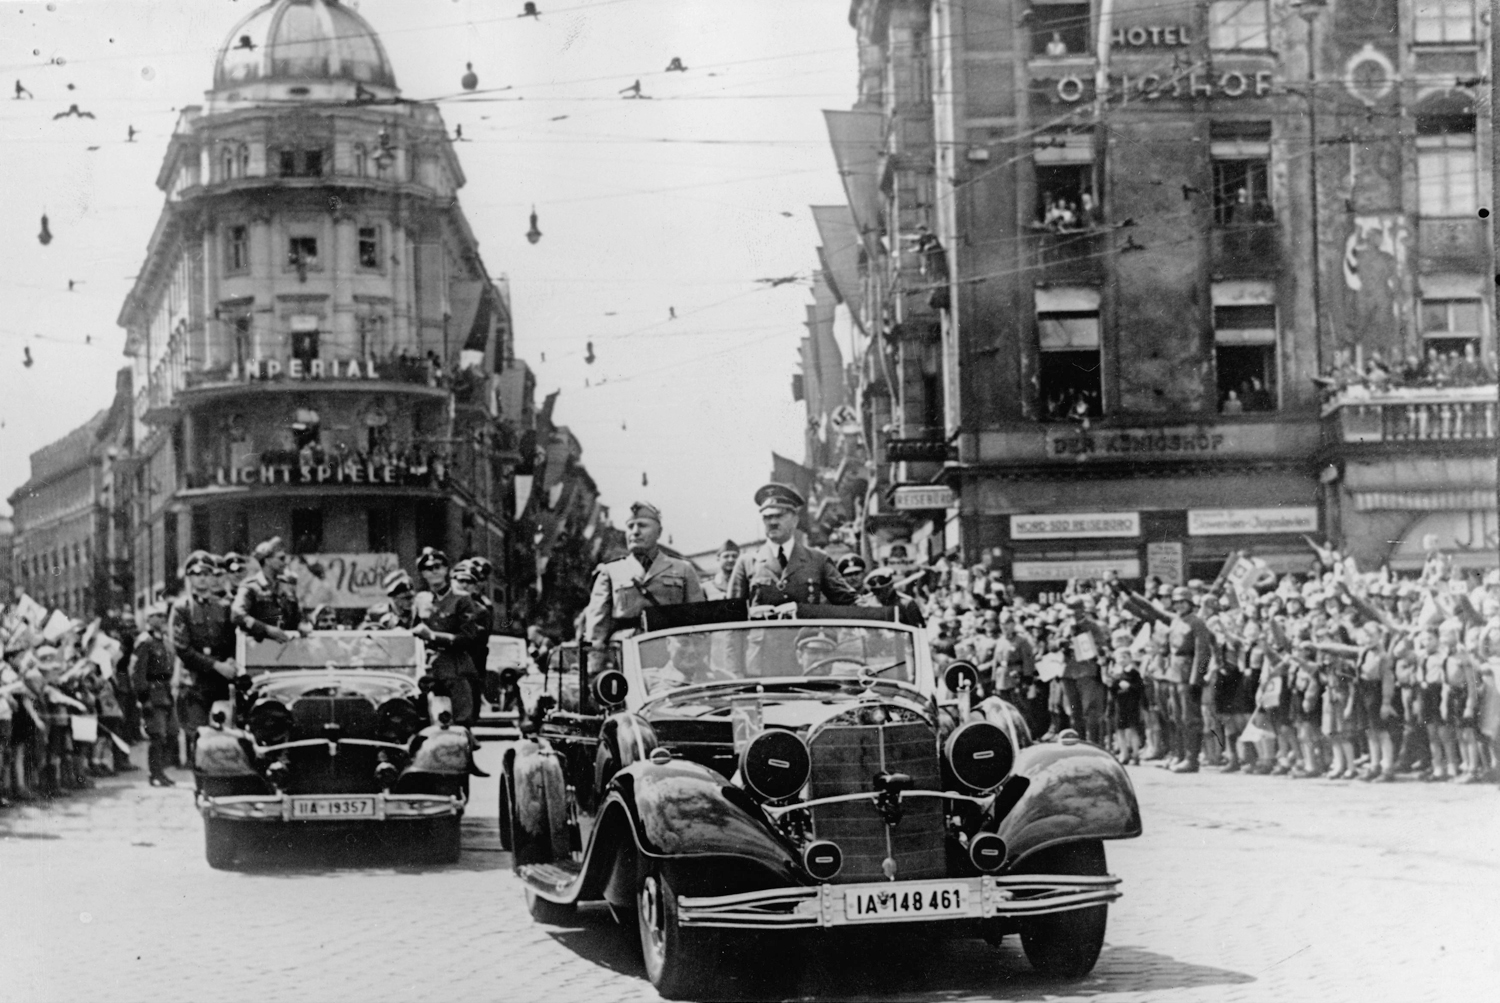 Adolf Hitler and Benito Mussolini on a car parade through Munich